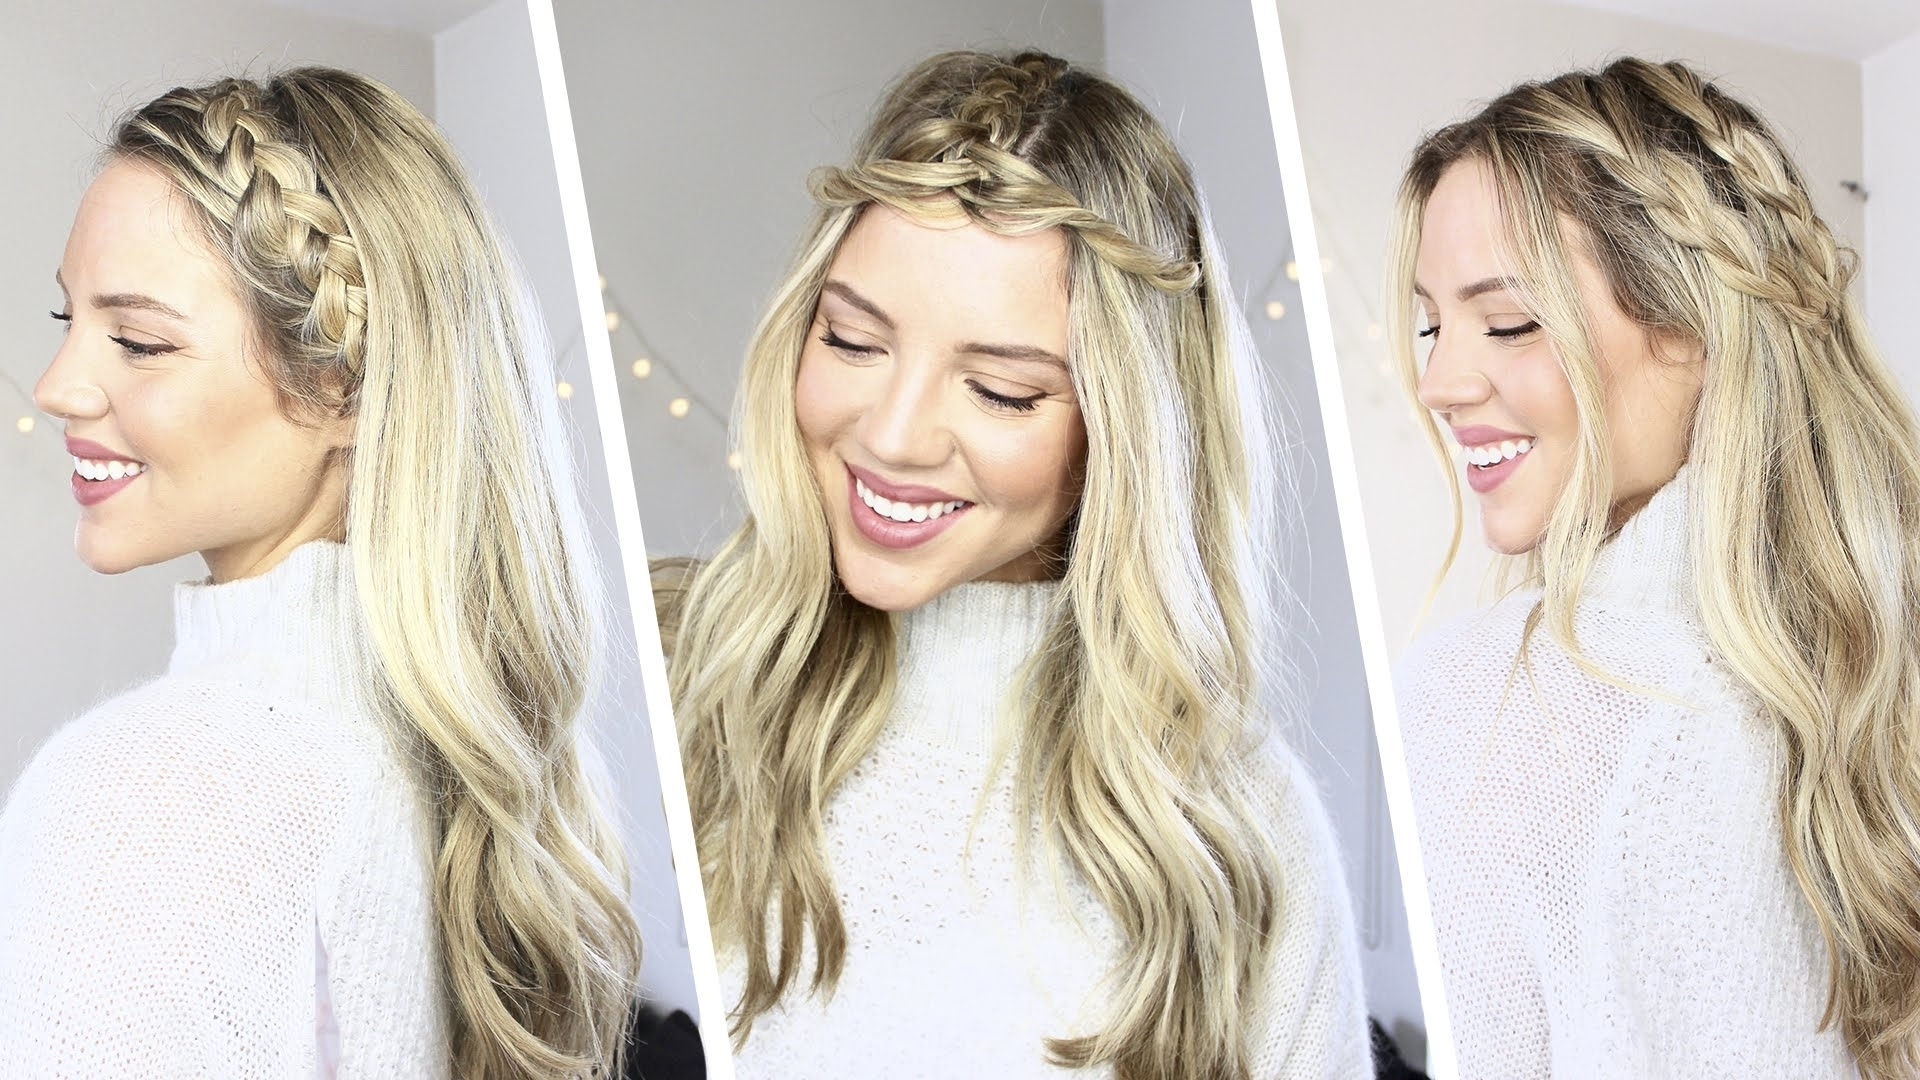 How To: 3 Easy Braided Hairstyles (View 5 of 15)